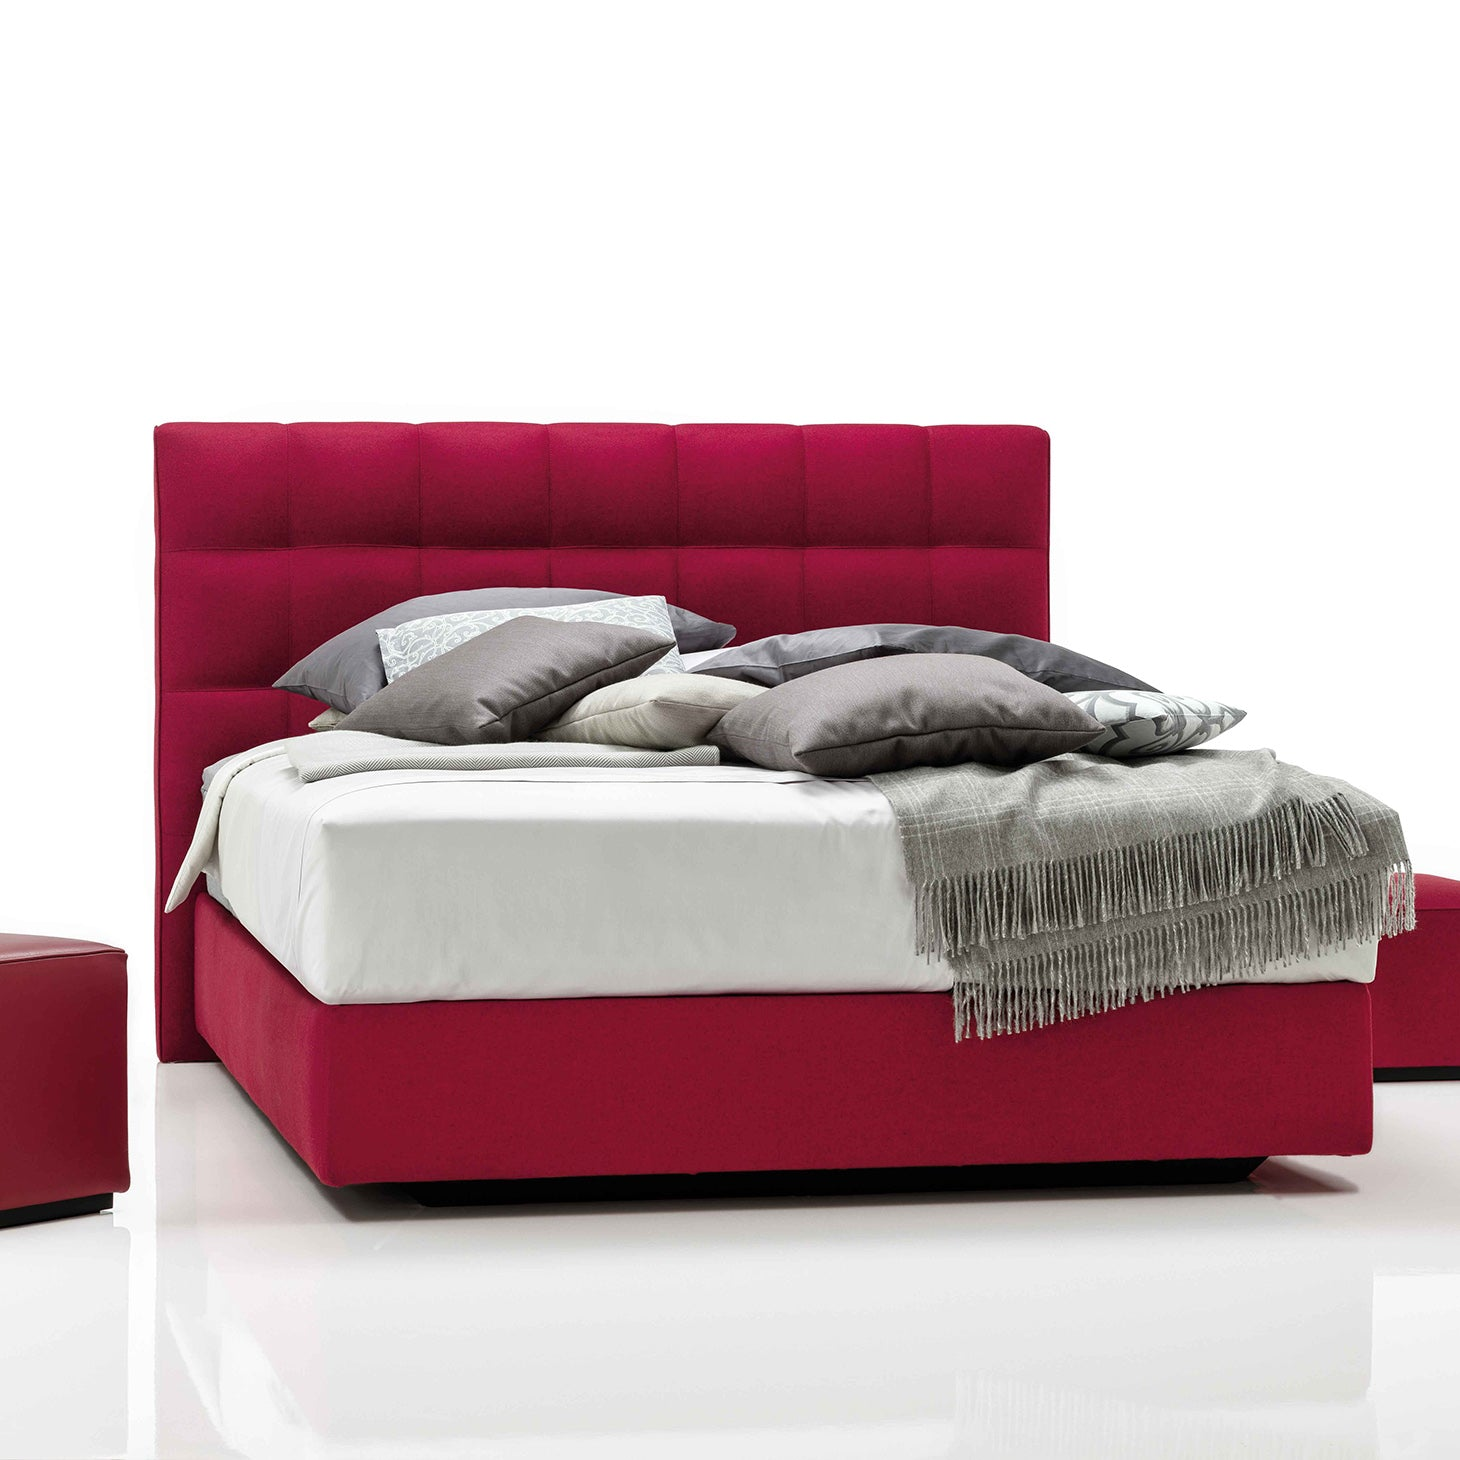 Manhattan Beds Nada Nasrallah & Christian Horner Designer Furniture Sku: 758-110-10047